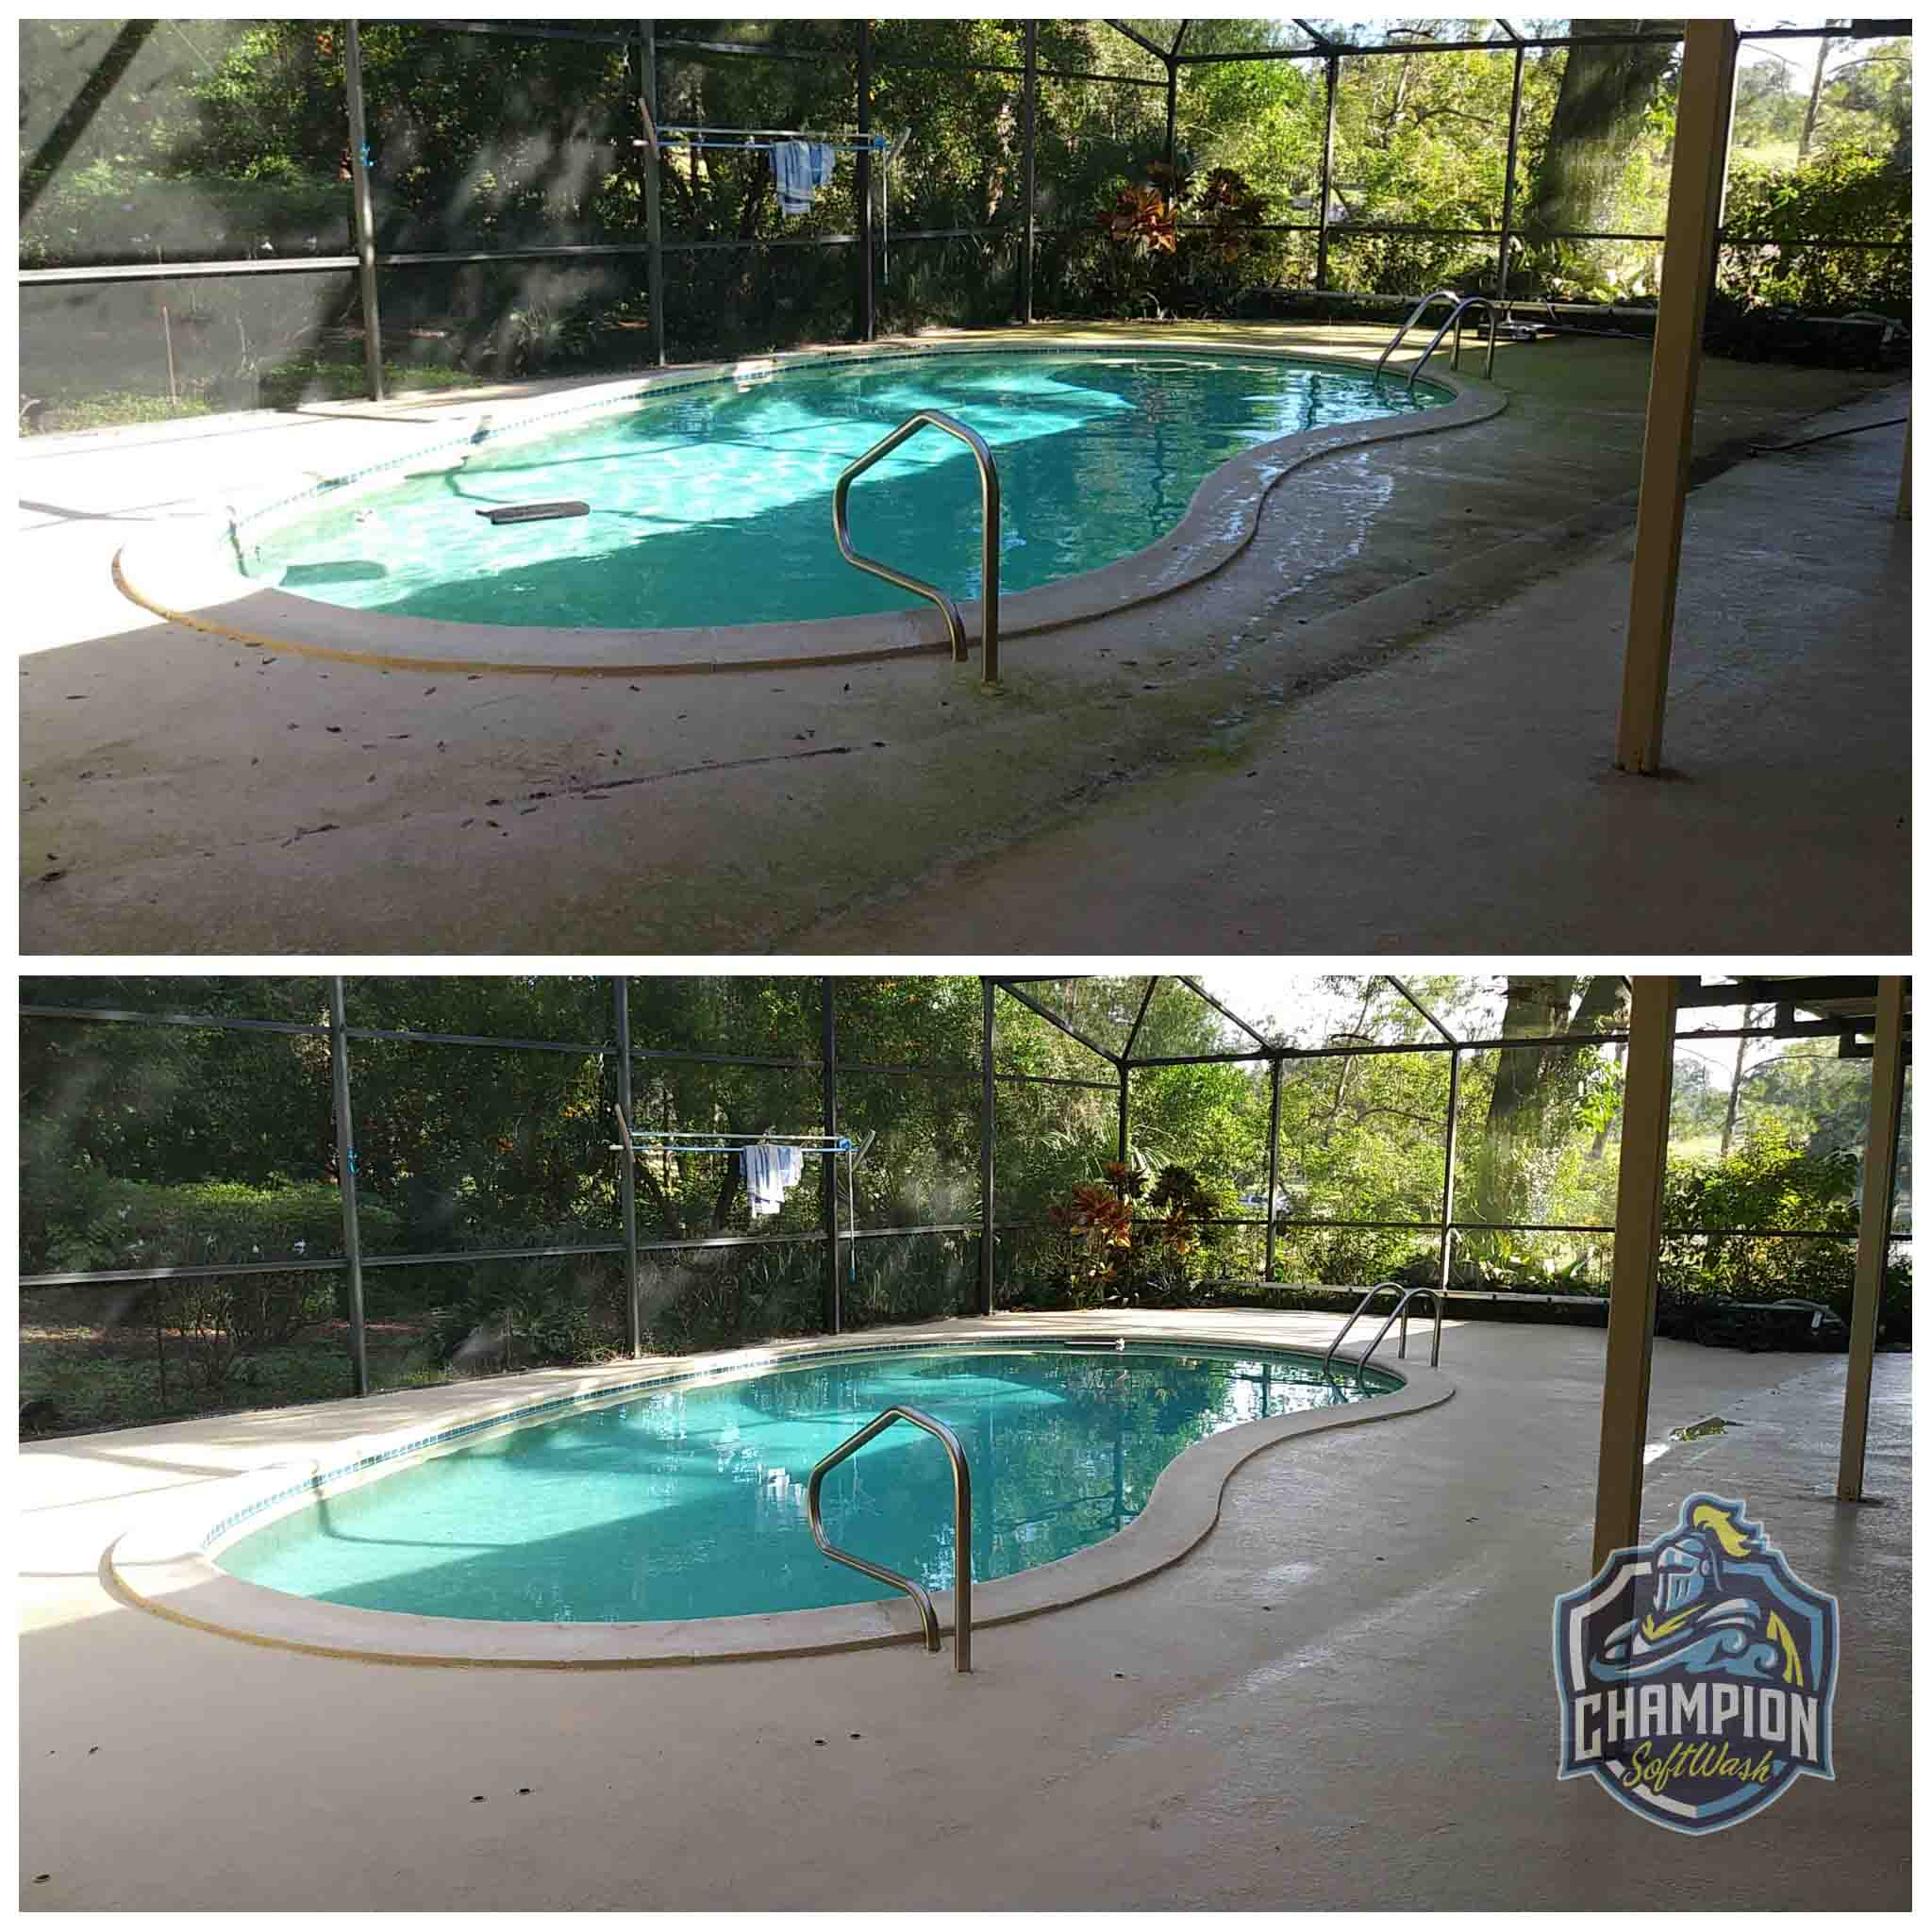 Before and After pool deck and screen enclosure cleaning in Florida by Champion SoftWash